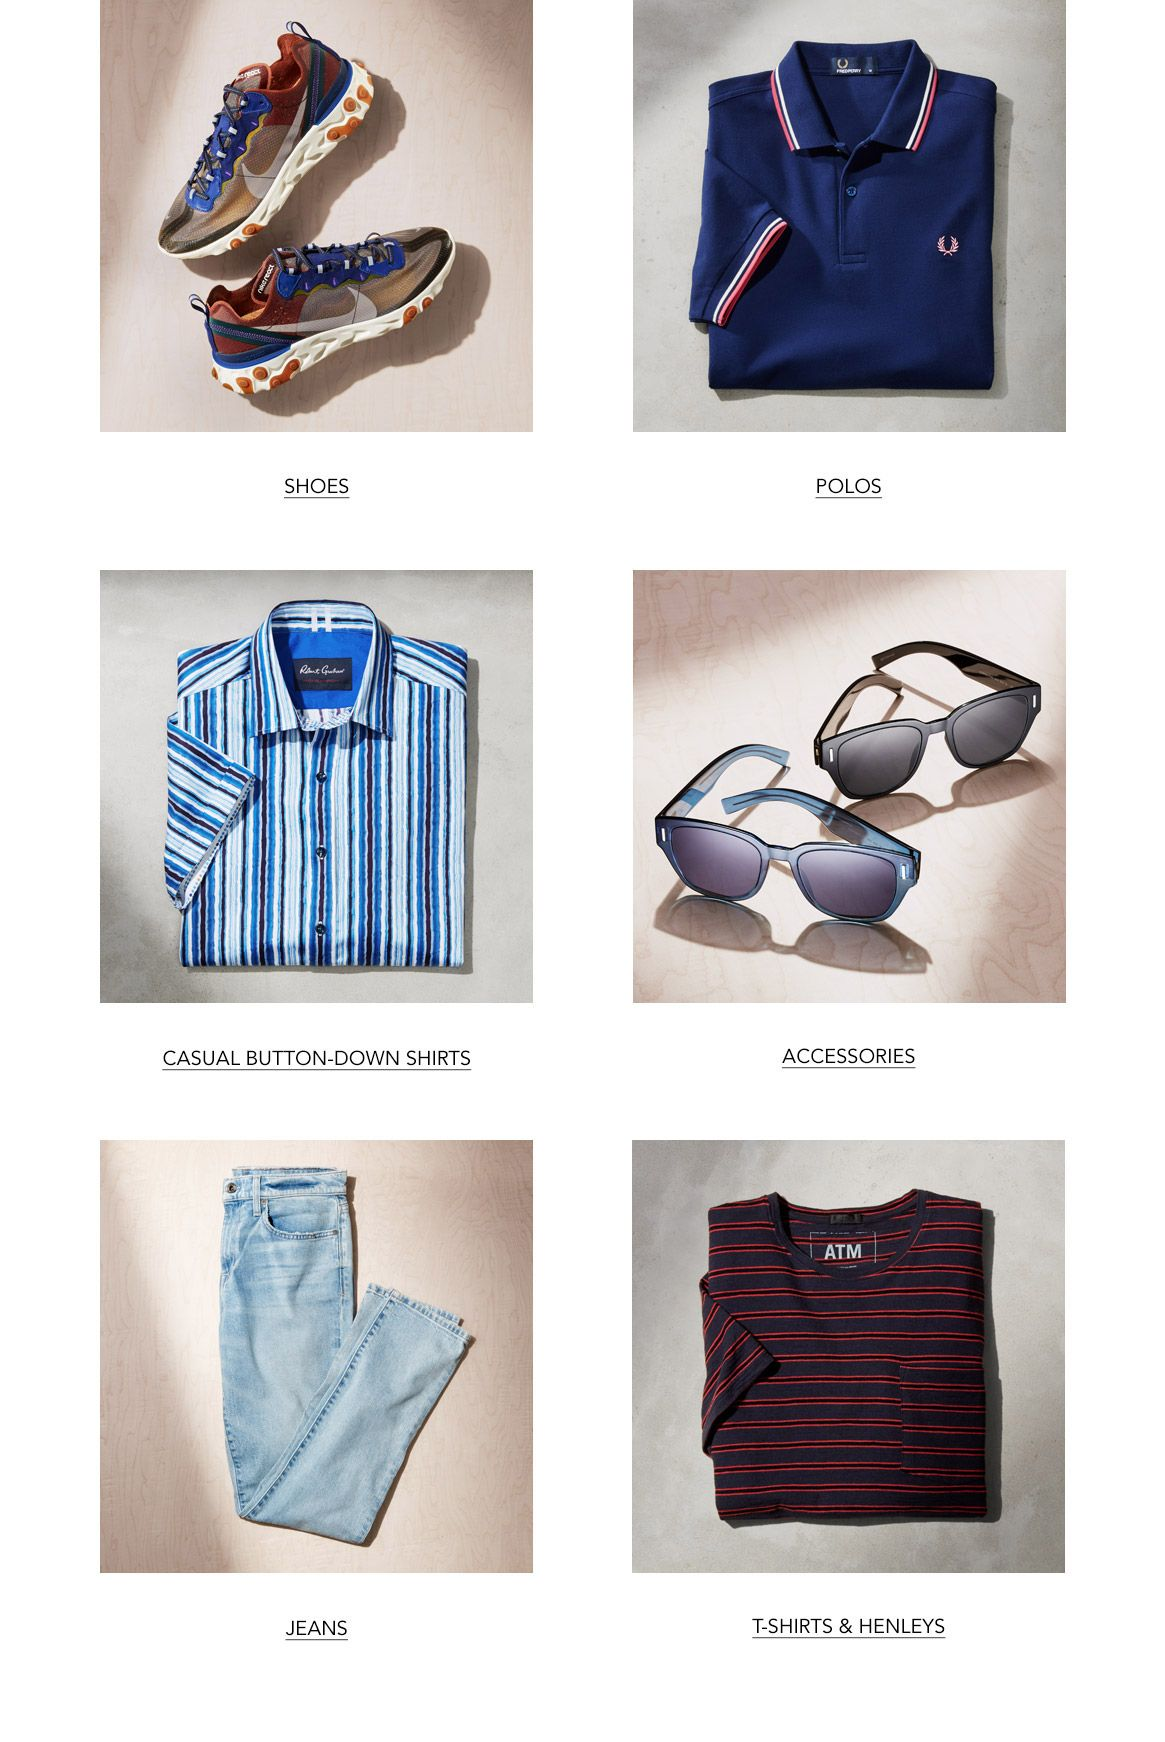 d7eeee04 Men's Designer Clothes & Latest Fashion for Men - Bloomingdale's